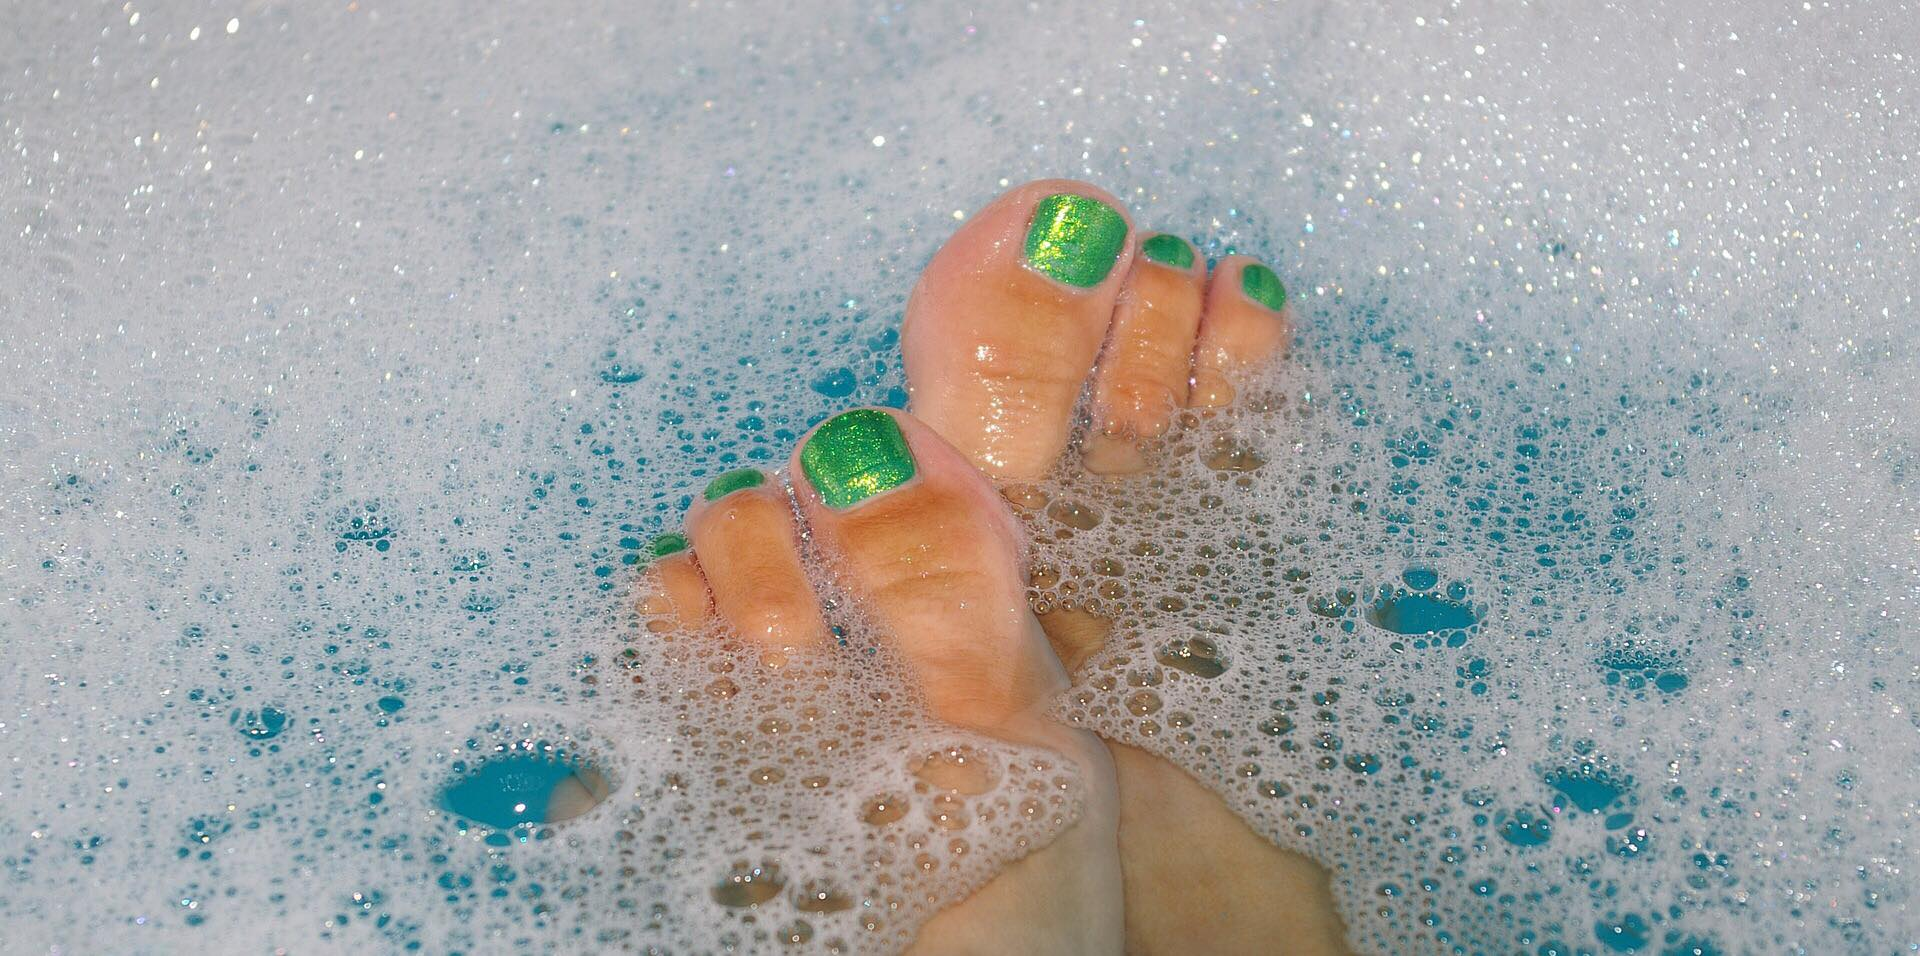 A bubble bath at the end of a long hard week sounds so relaxing!